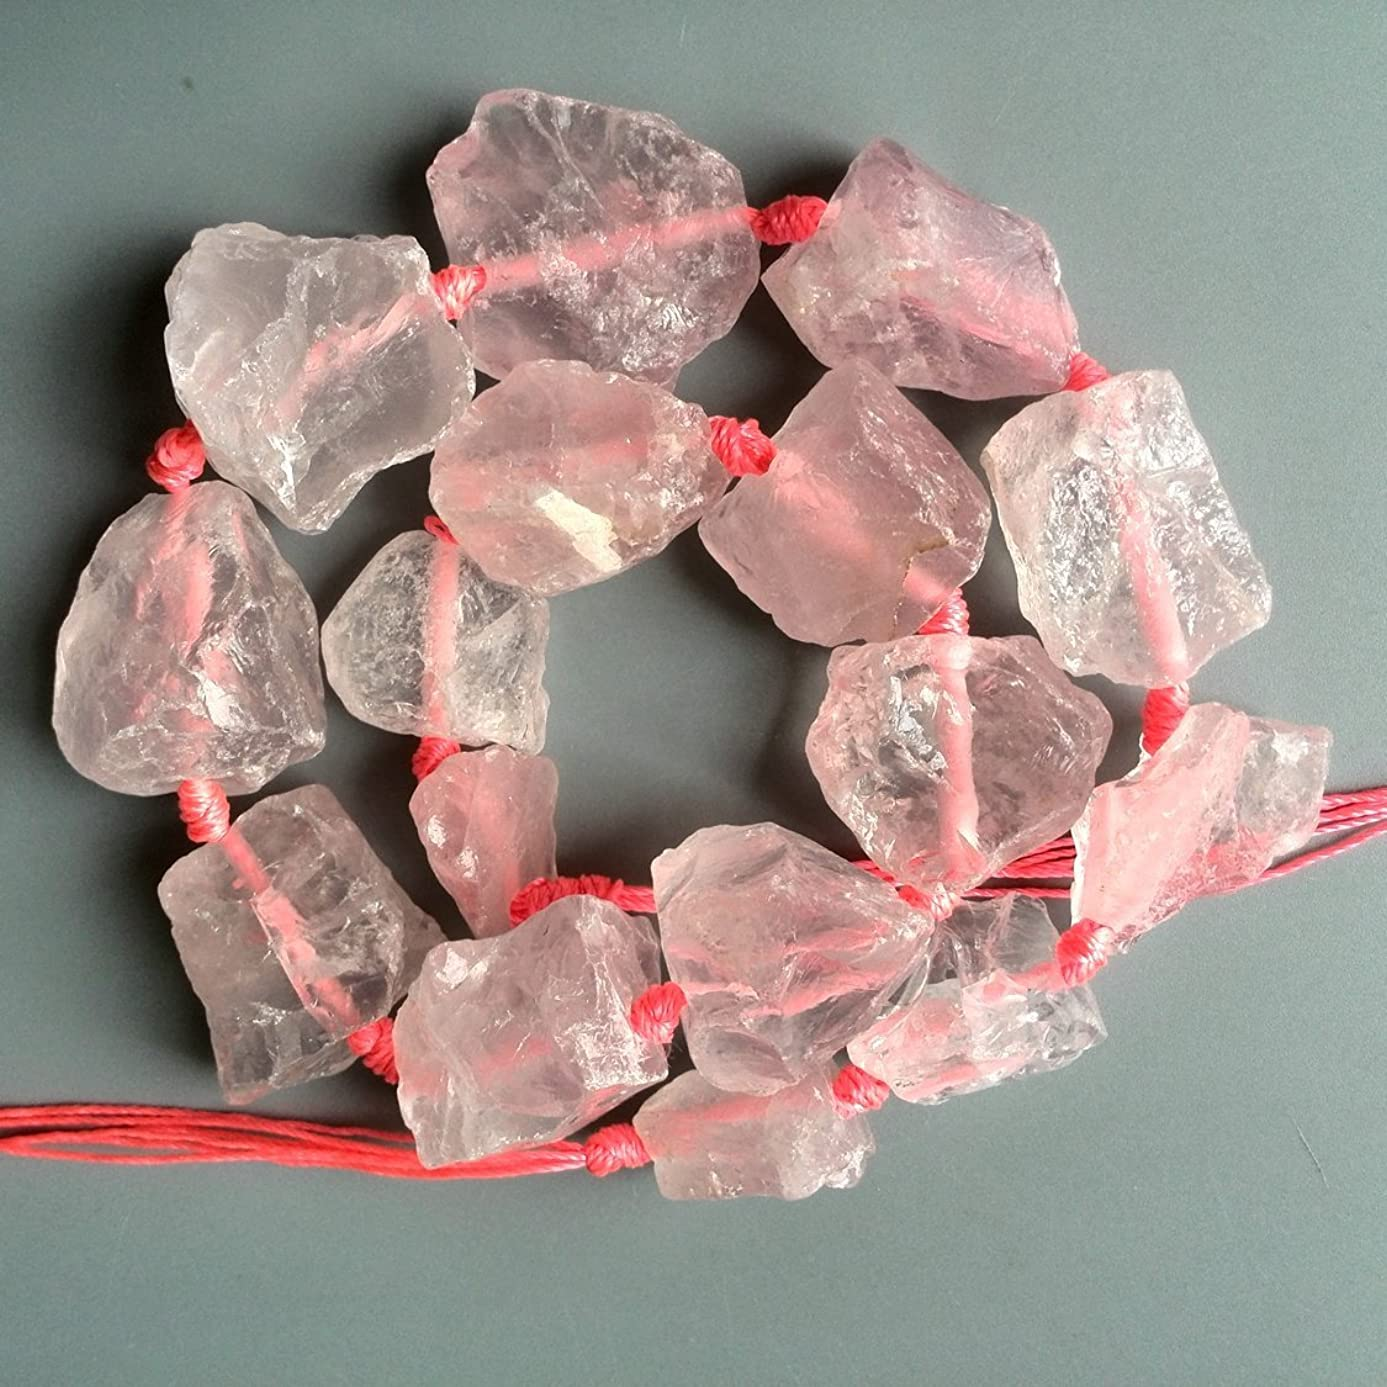 Natural Rose Quartz Nuggets Beads Rough Raw Pink Crystal Stone Beads Center Drilled Supplies for jewelry making